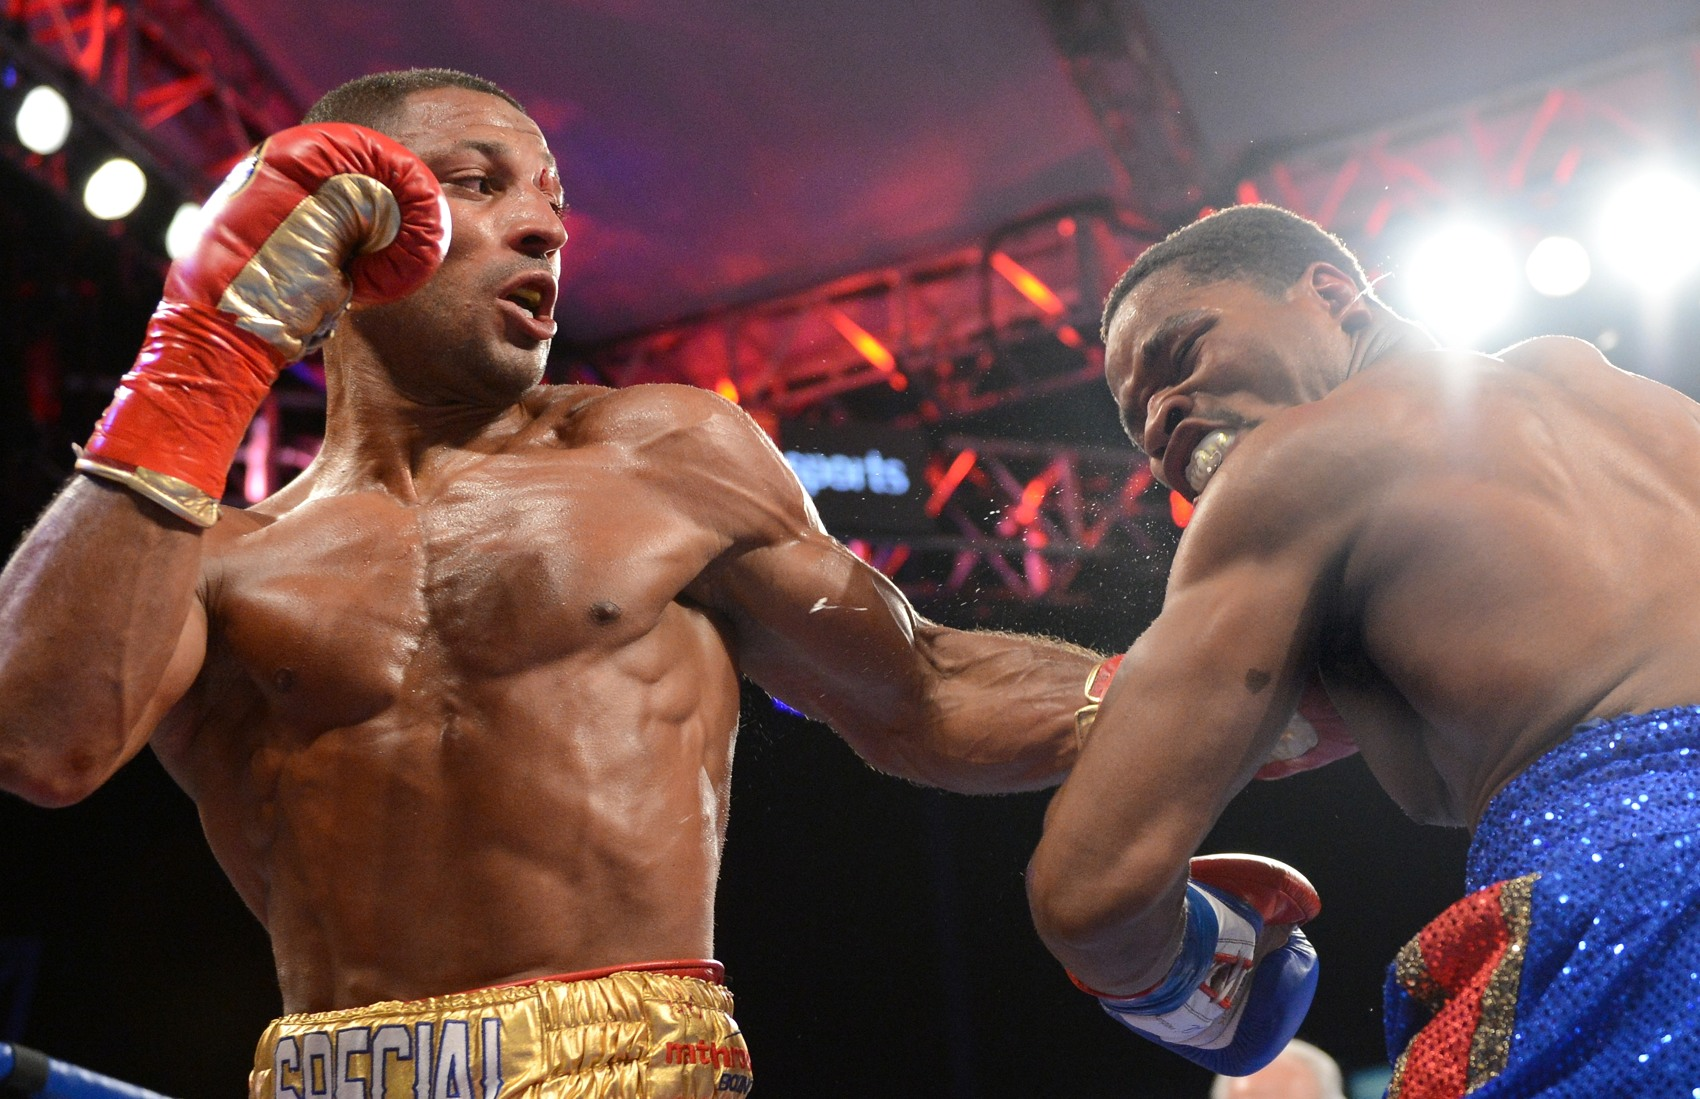 shawn porter vs kell brook photo by naoki fukuda03 - Kell Brook says deal is close for fight with Terence Crawford on November 14